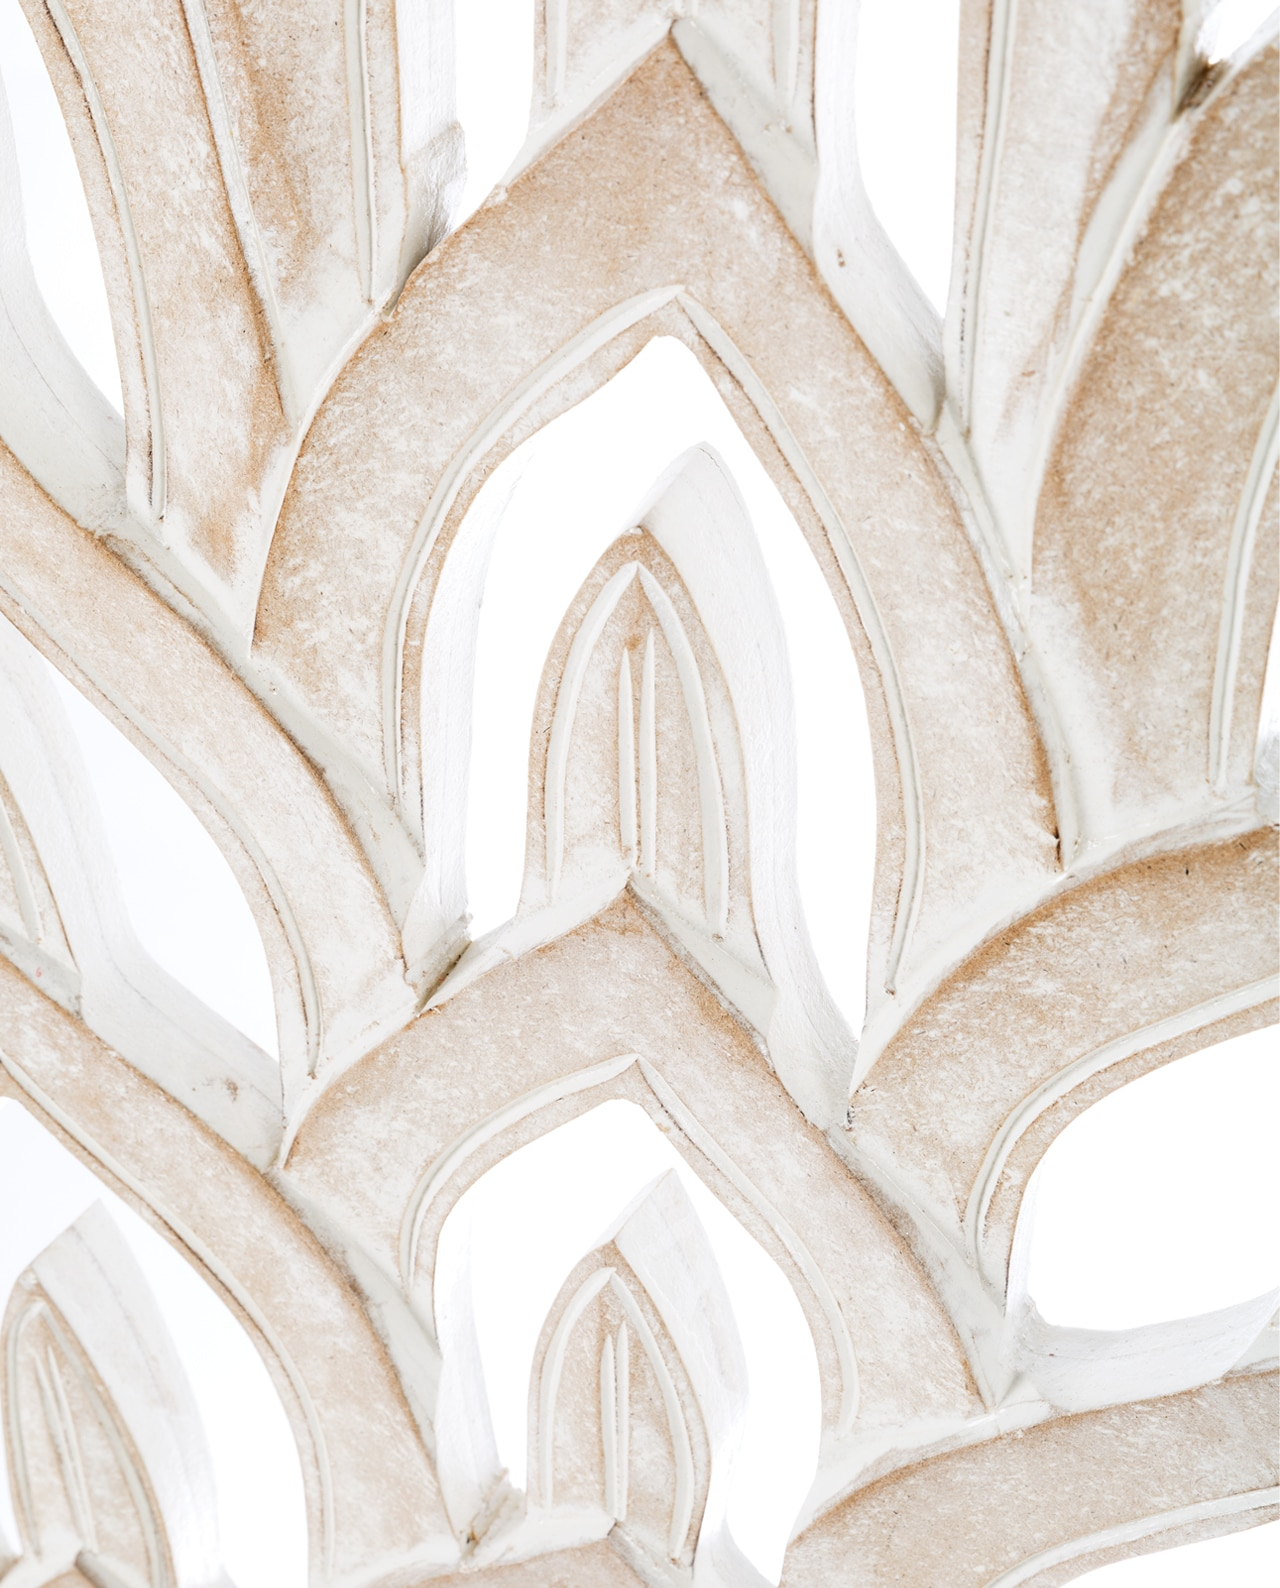 King Mother Of Pearl Headboard By The Yard: Lotus Flower Carved King Size Headboard 100hx180w